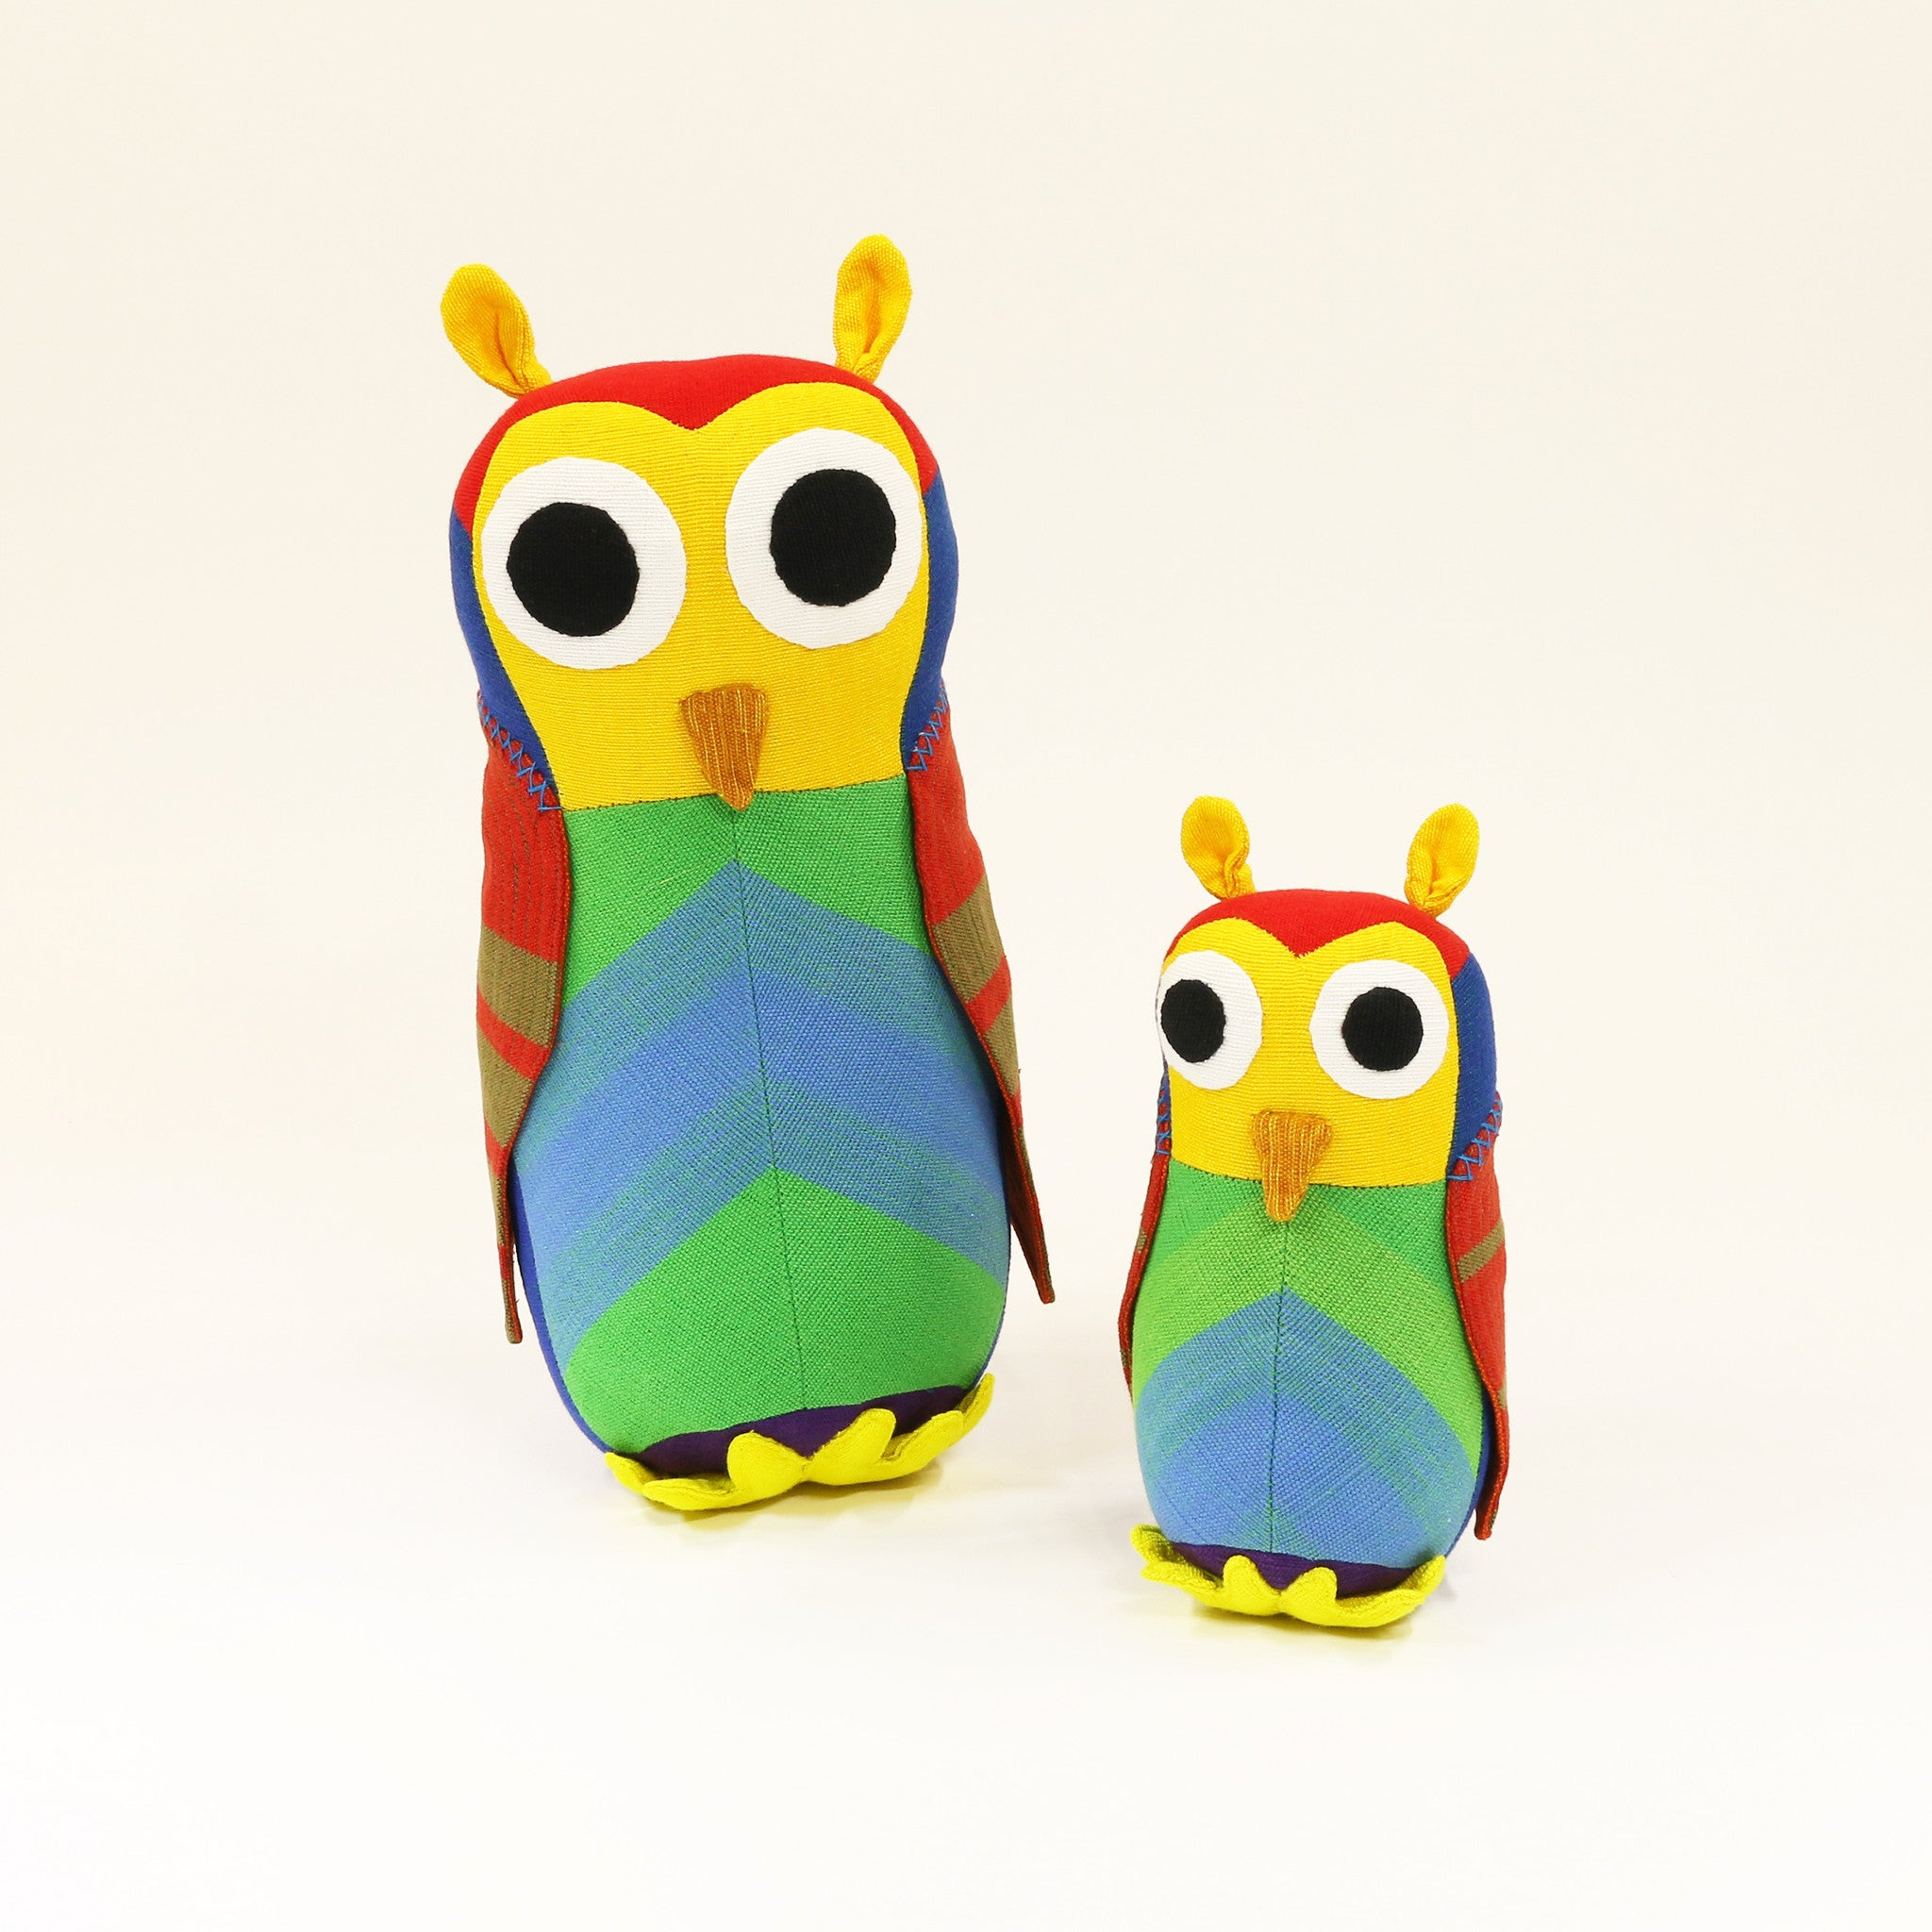 Owl Toy - Harvey, the Owl (small & large sizes)